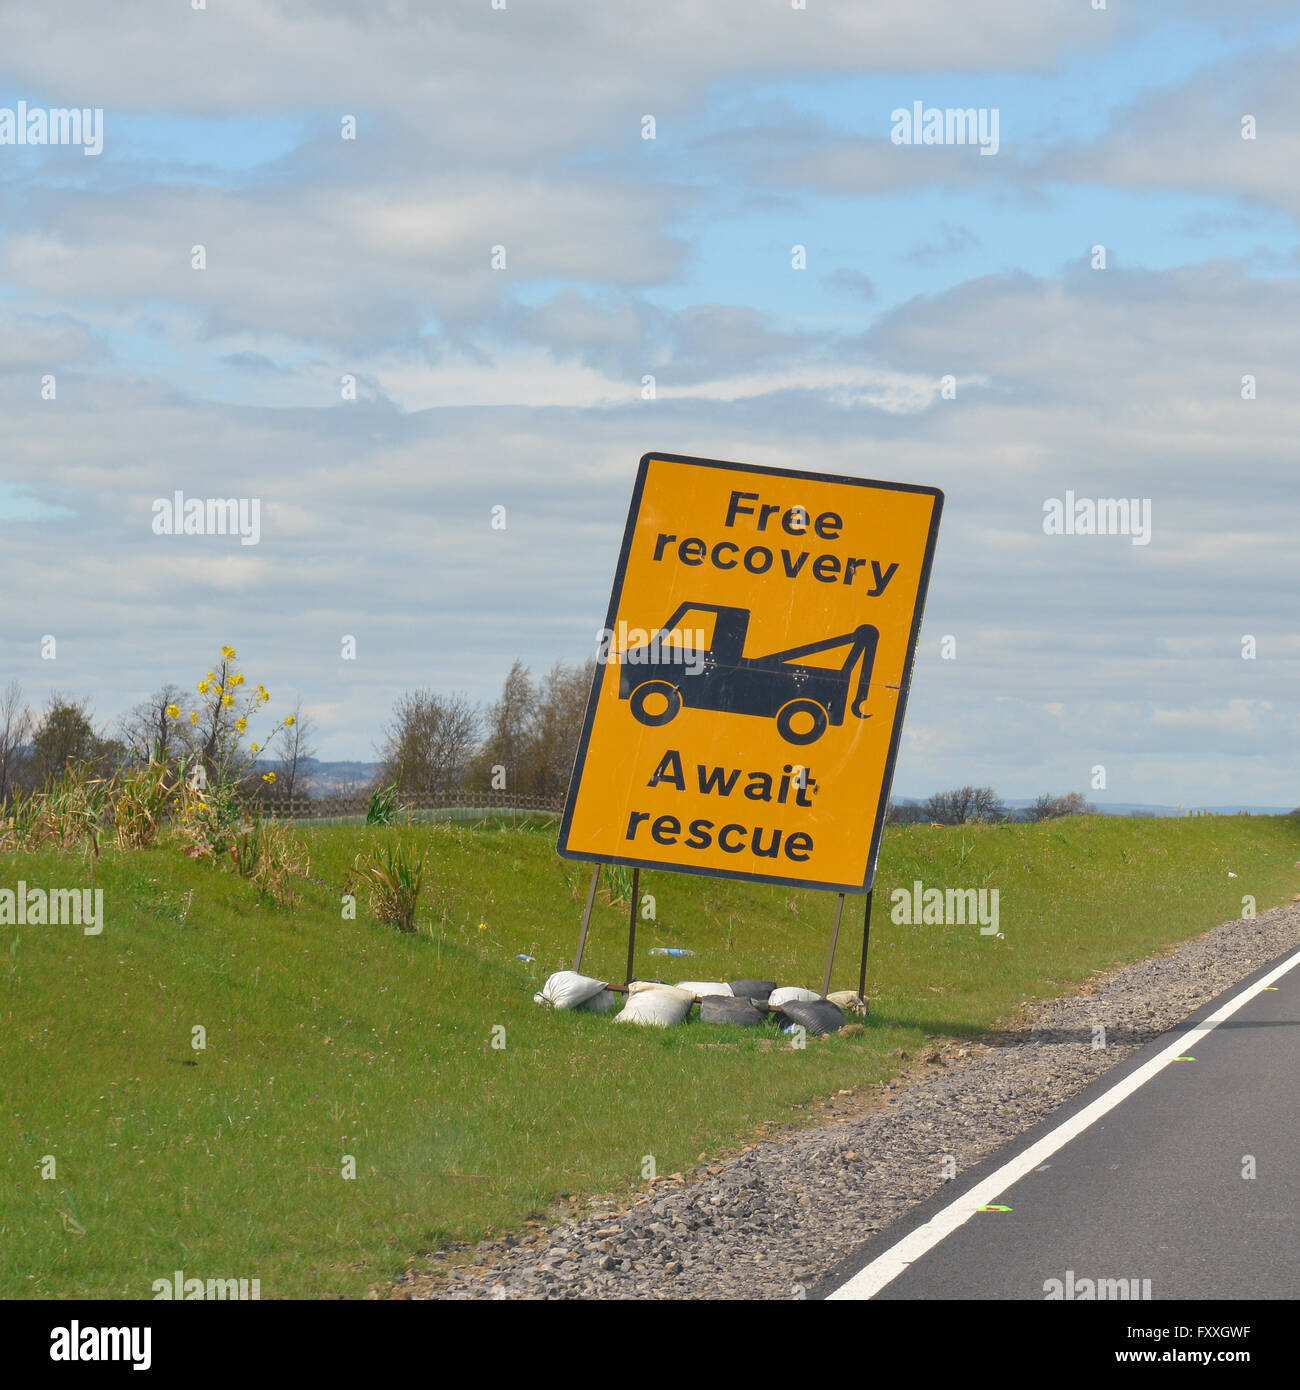 'Free recovery await rescue' sign in roadworks on A1 (M), Yorkshire, England, UK - Stock Image